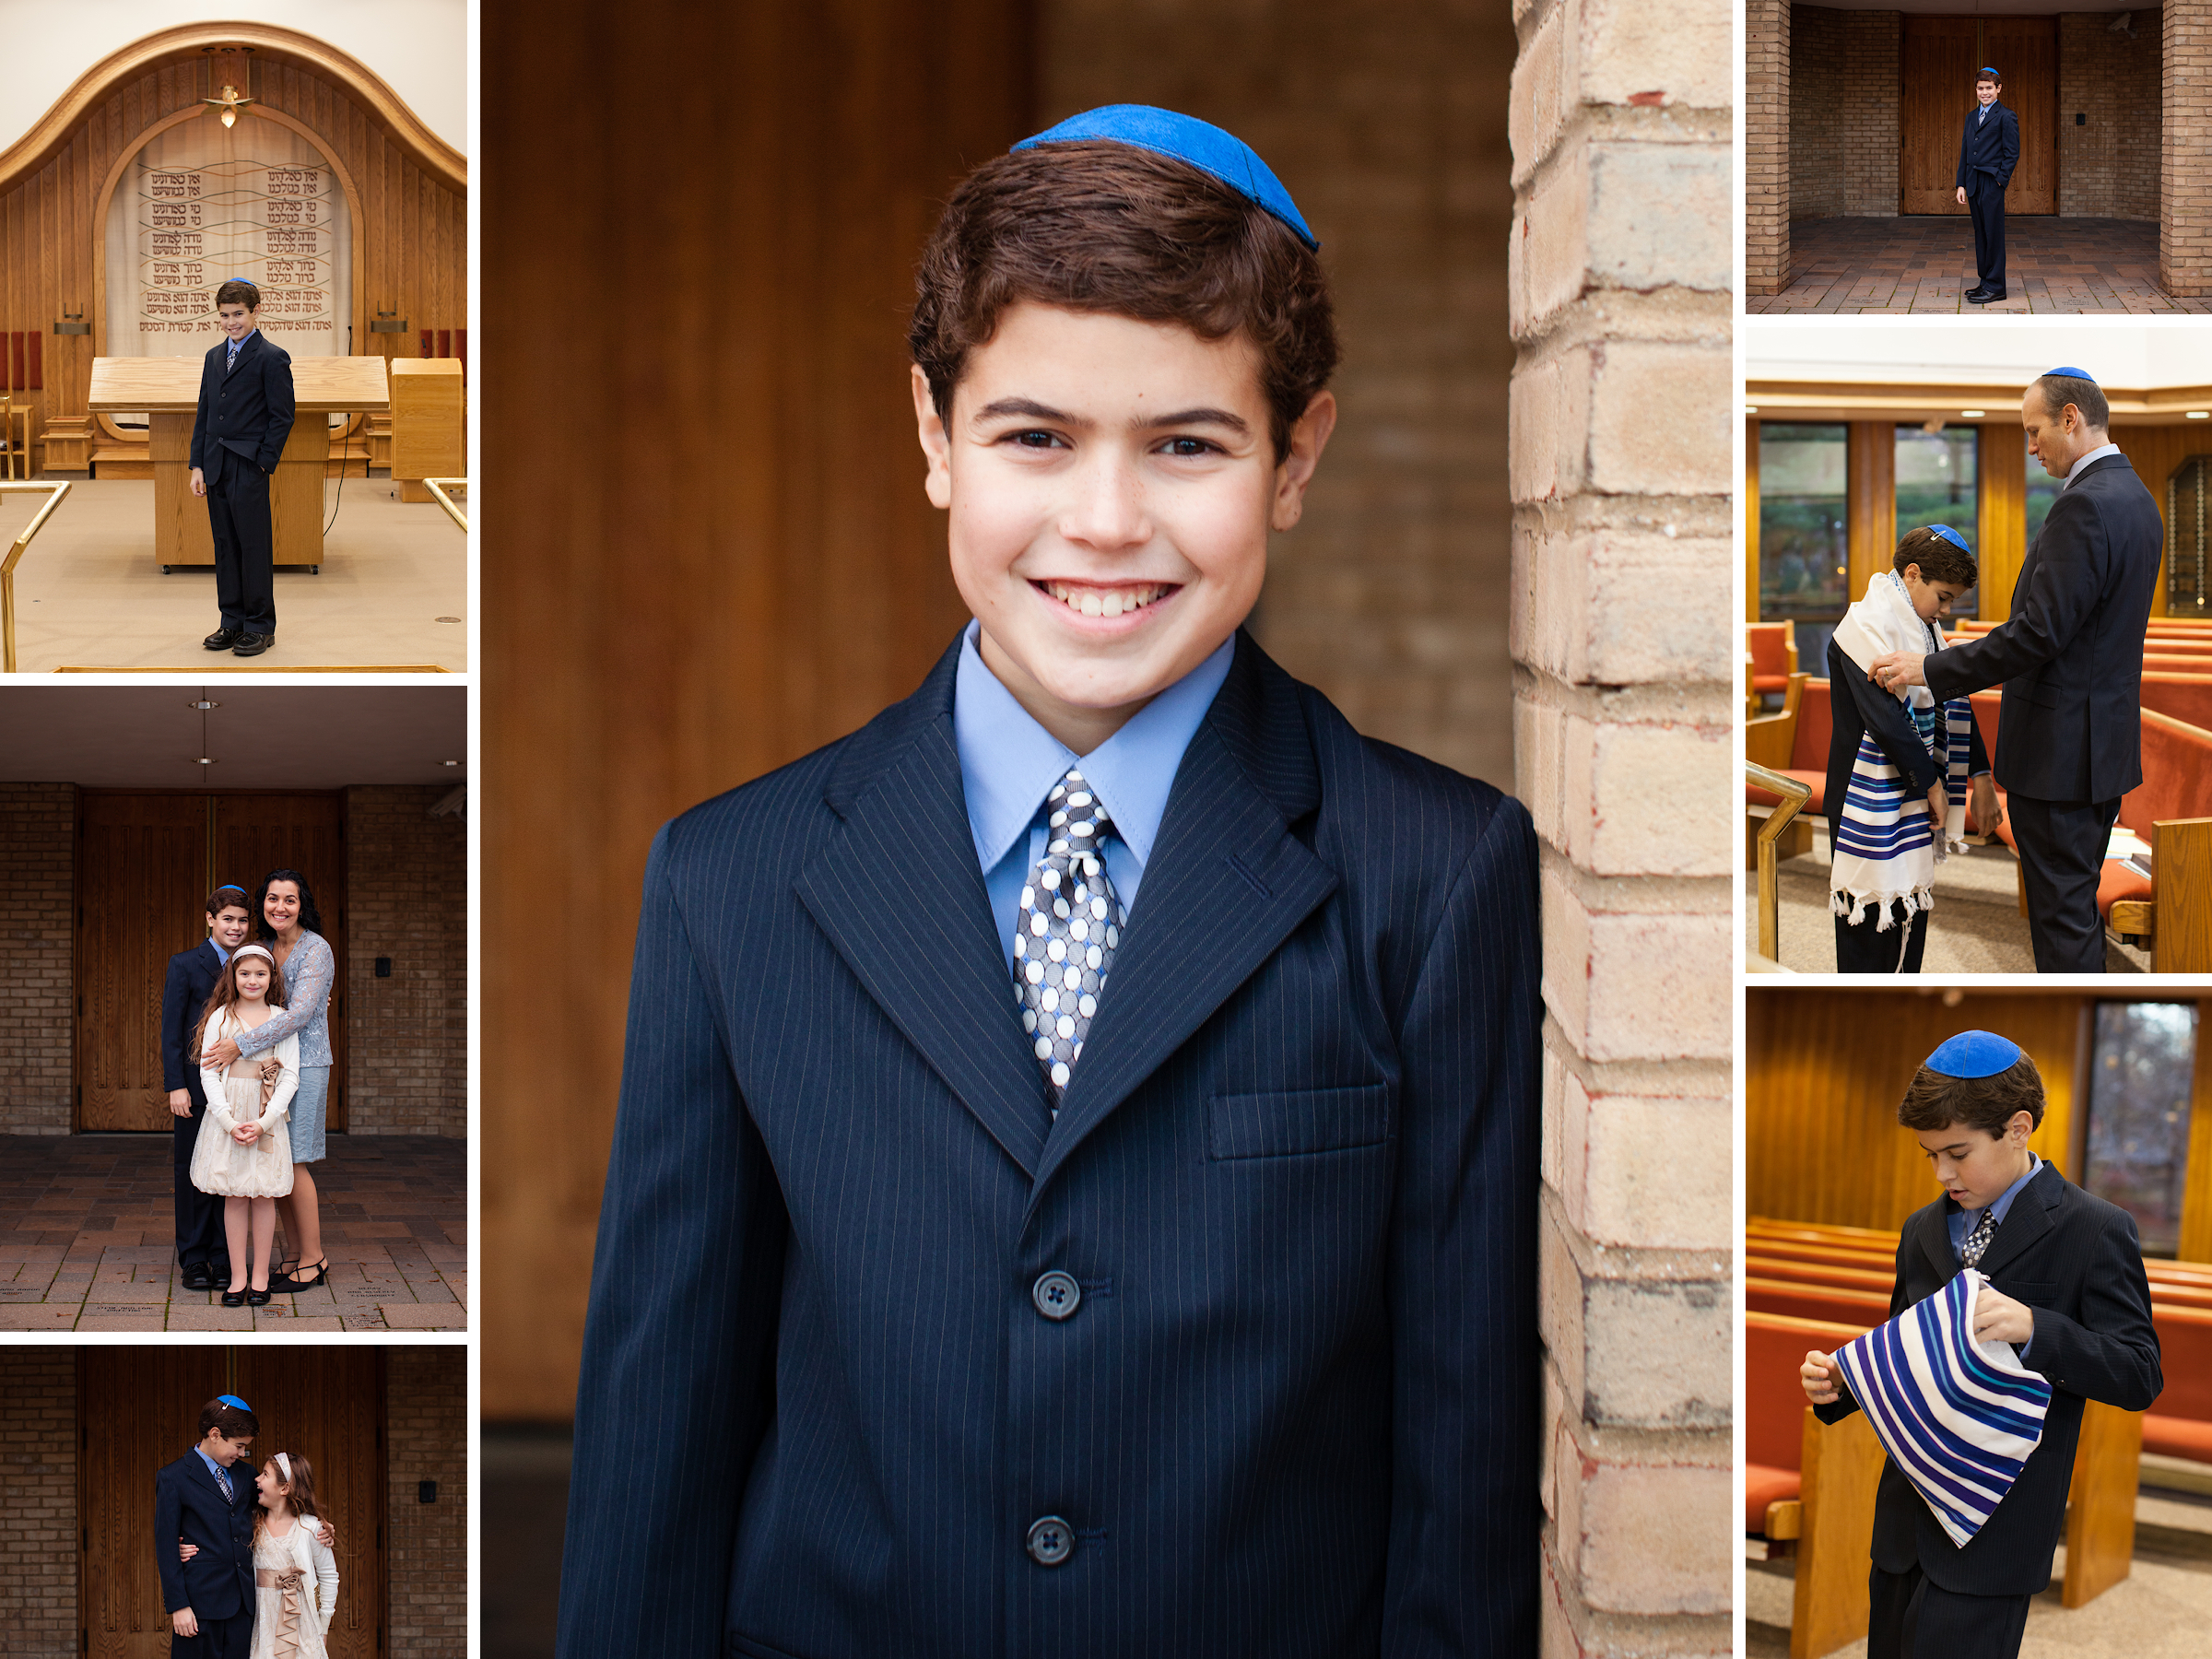 Zach_Bar_Mitzvah_melanie_reyes_photography